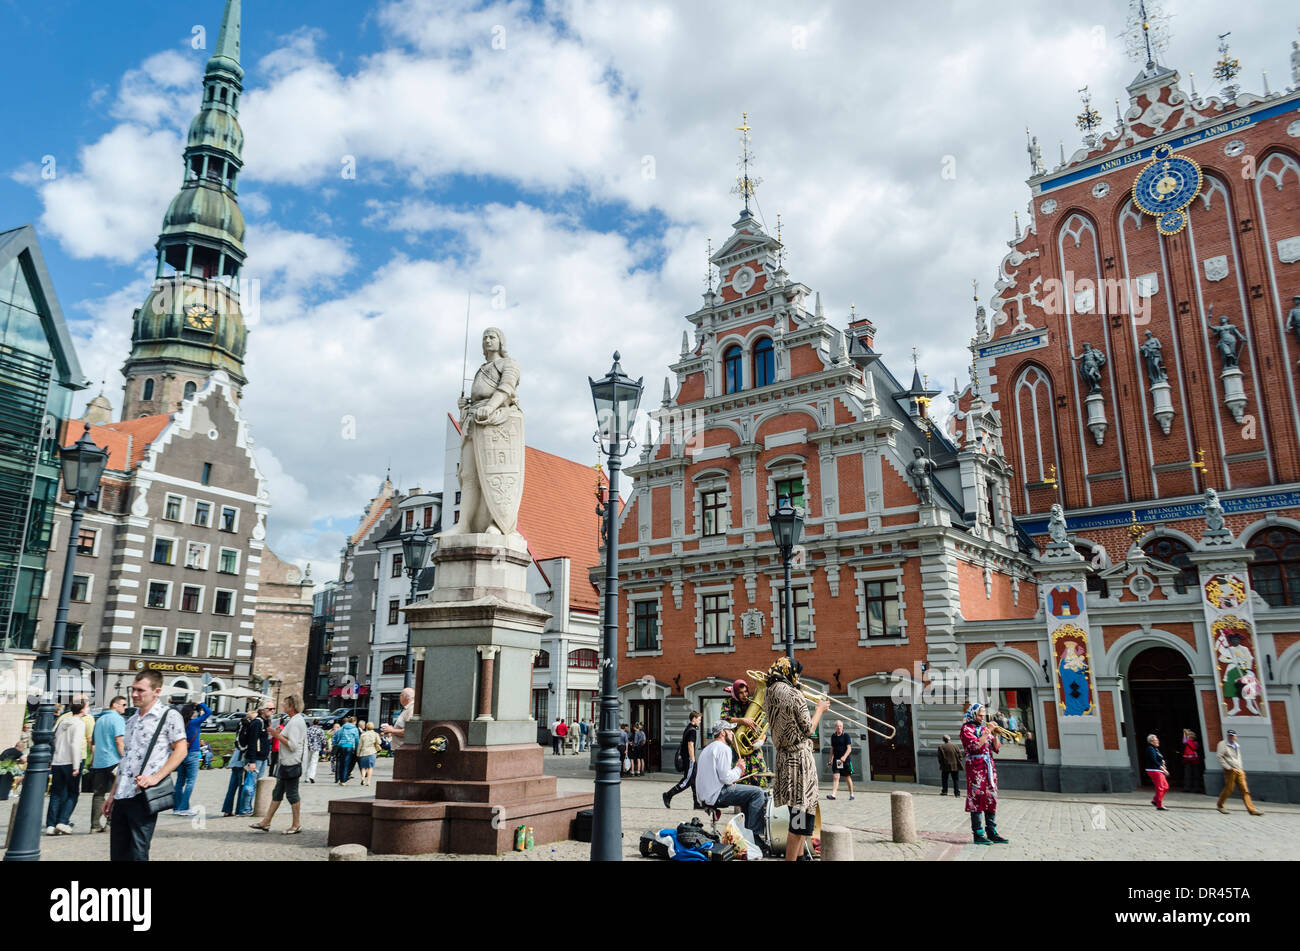 Town Hall Square, Riga, Latvia - Stock Image